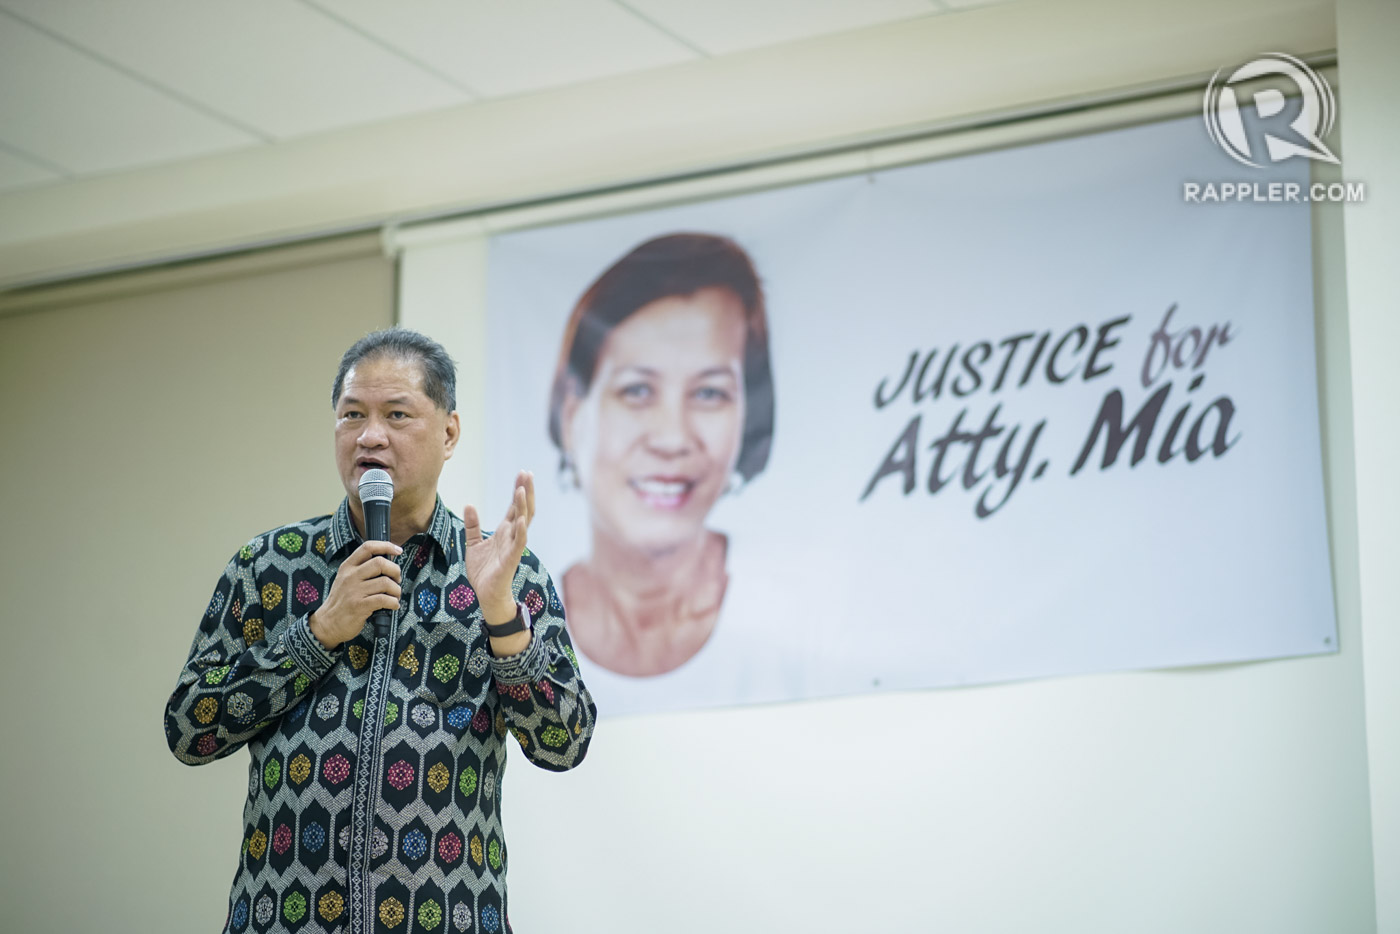 'ONE DEATH TOO MANY.' Environmental lawyer Tony La Viu00f1a says Mia Mascariu00f1as-Green's death should be the last 'among lawyers and among Filipinos.' Photo by Martin San Diego/Rappler